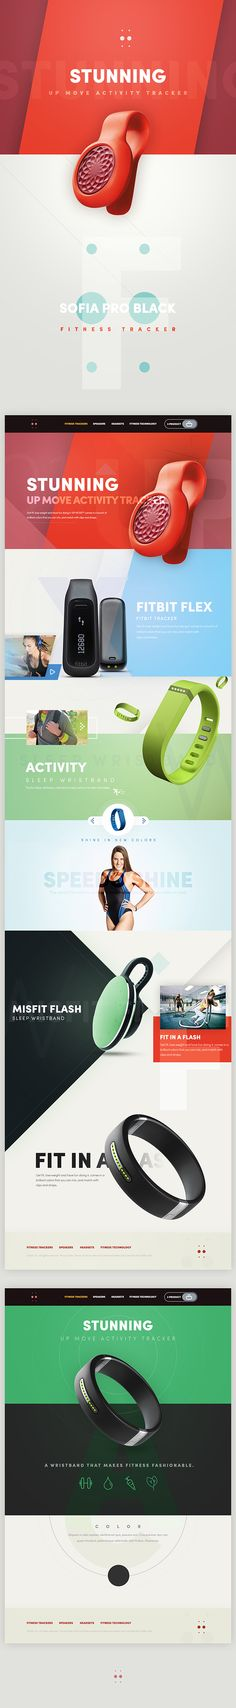 Fitness Tracker - Stunning Ui design concept and visual identity by Cüneyt ŞEN.